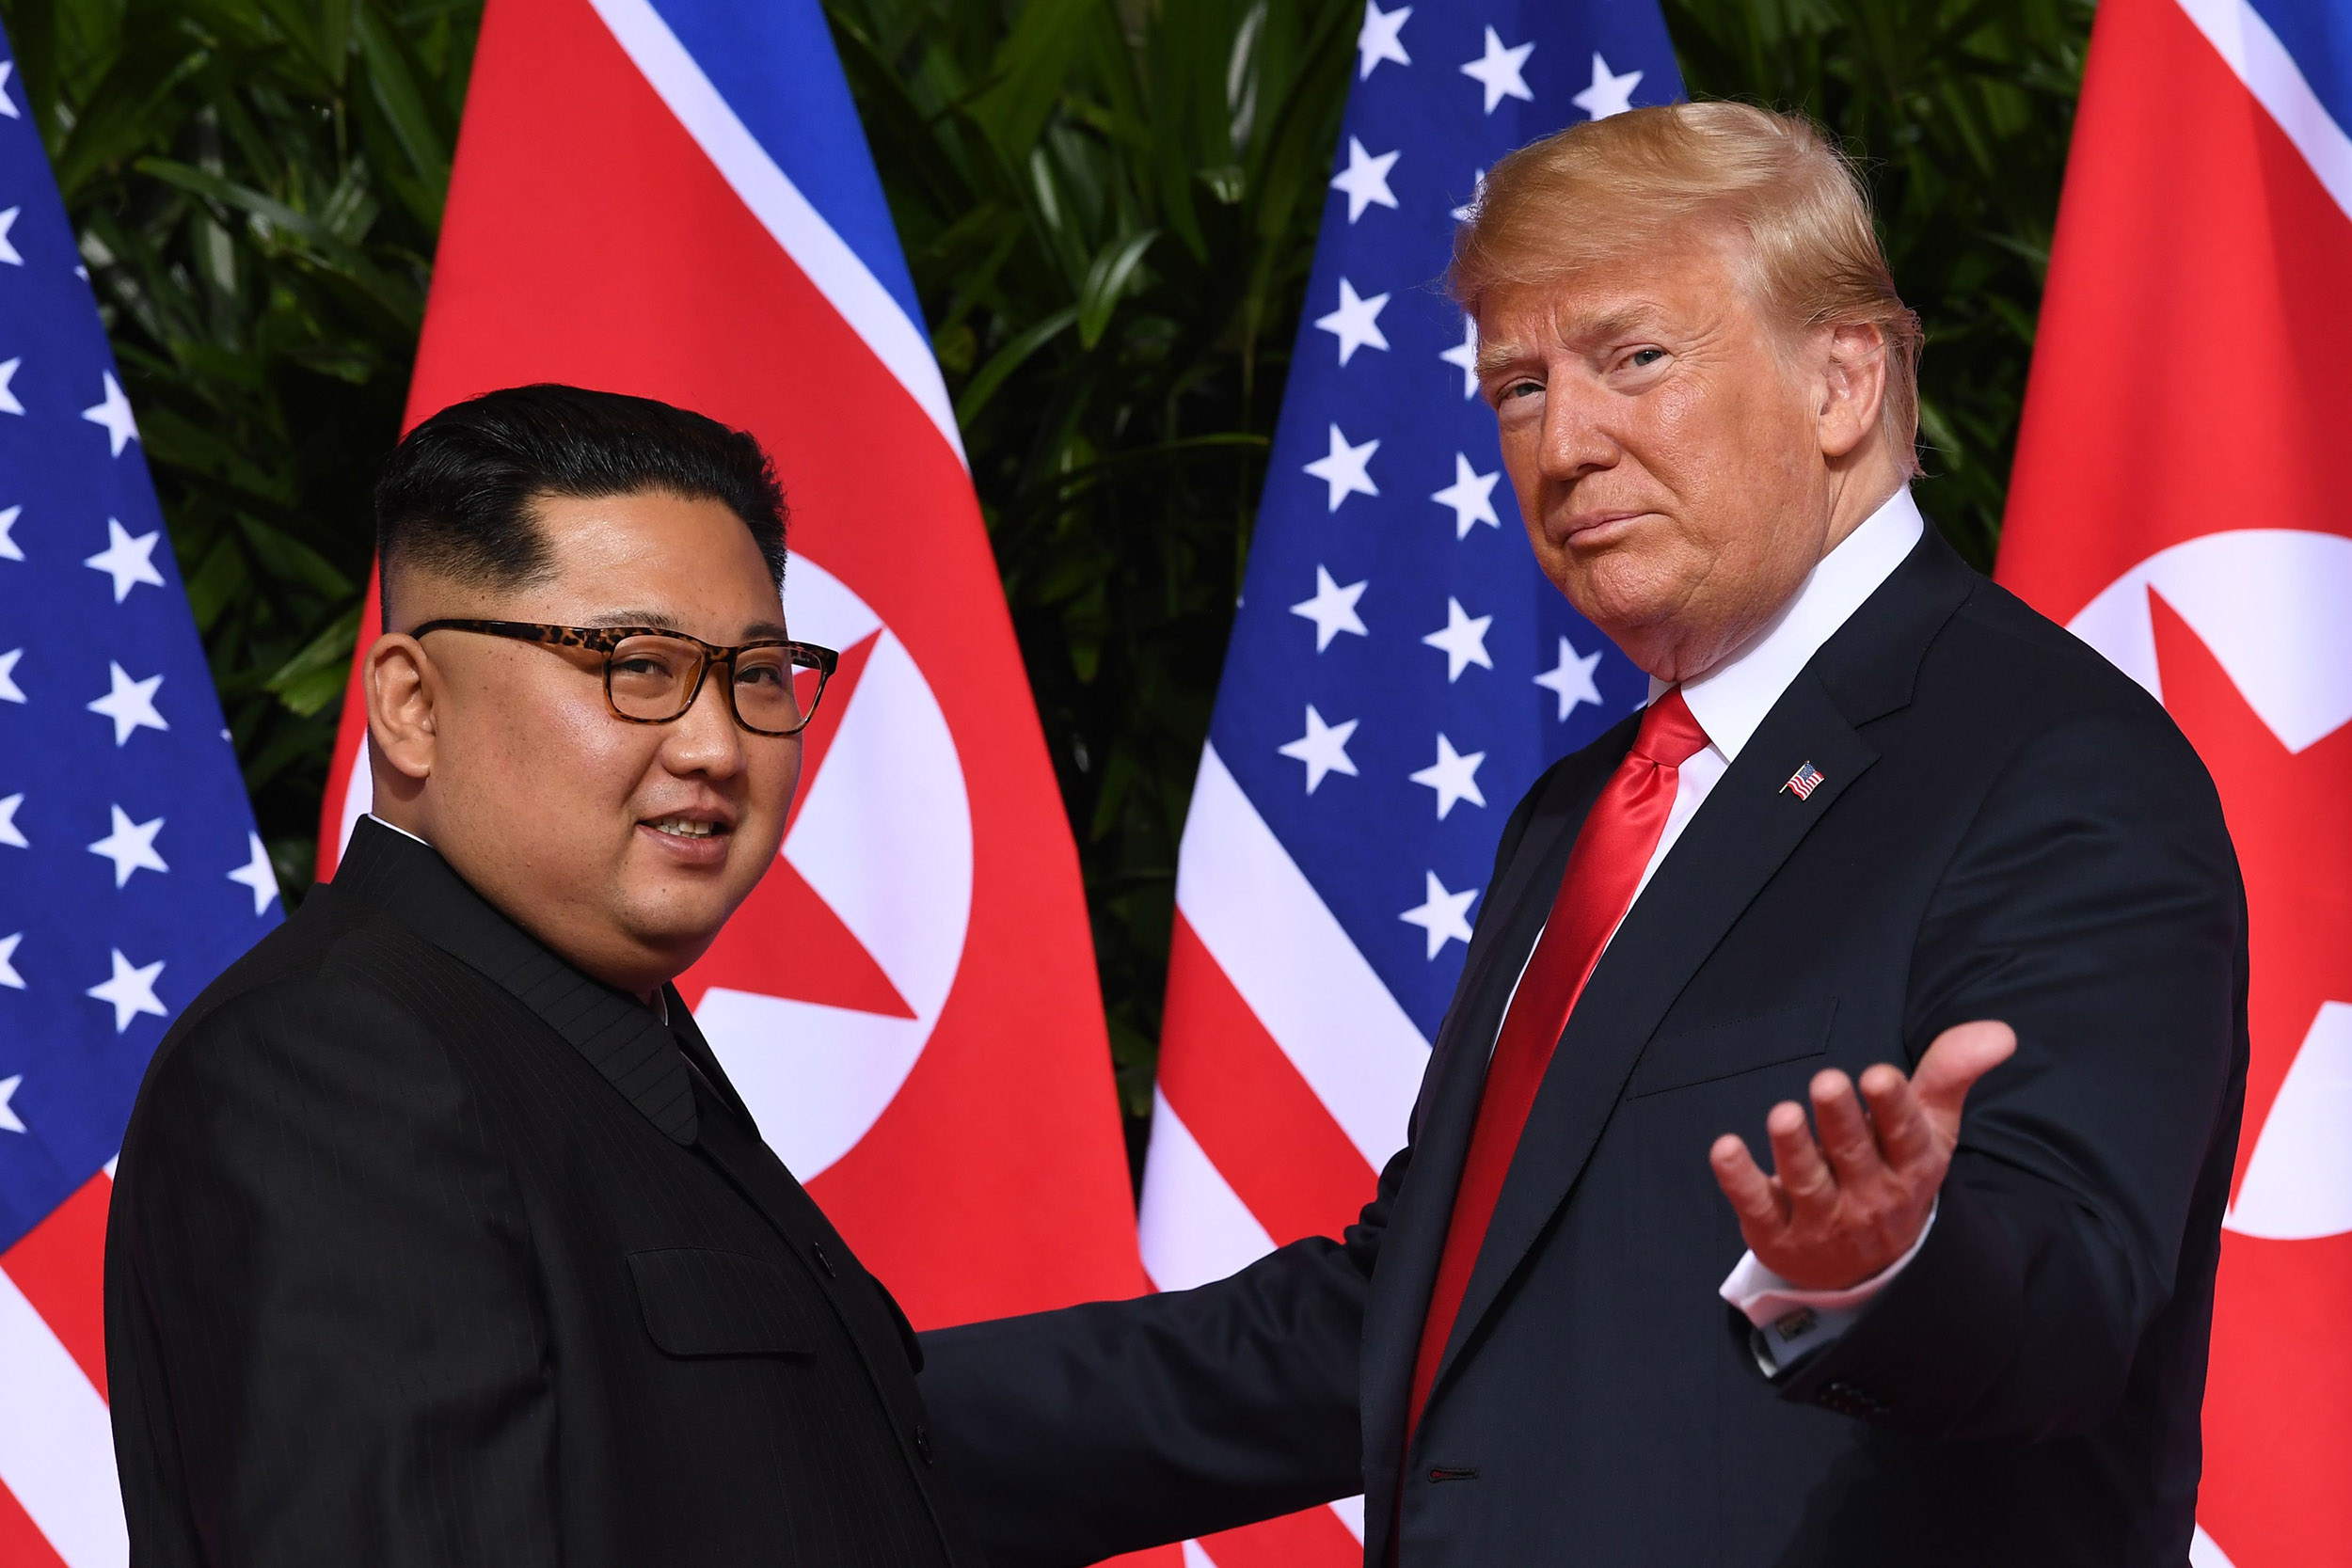 North Korea's Kim backs away from Trump relationship two years after  historic handshake